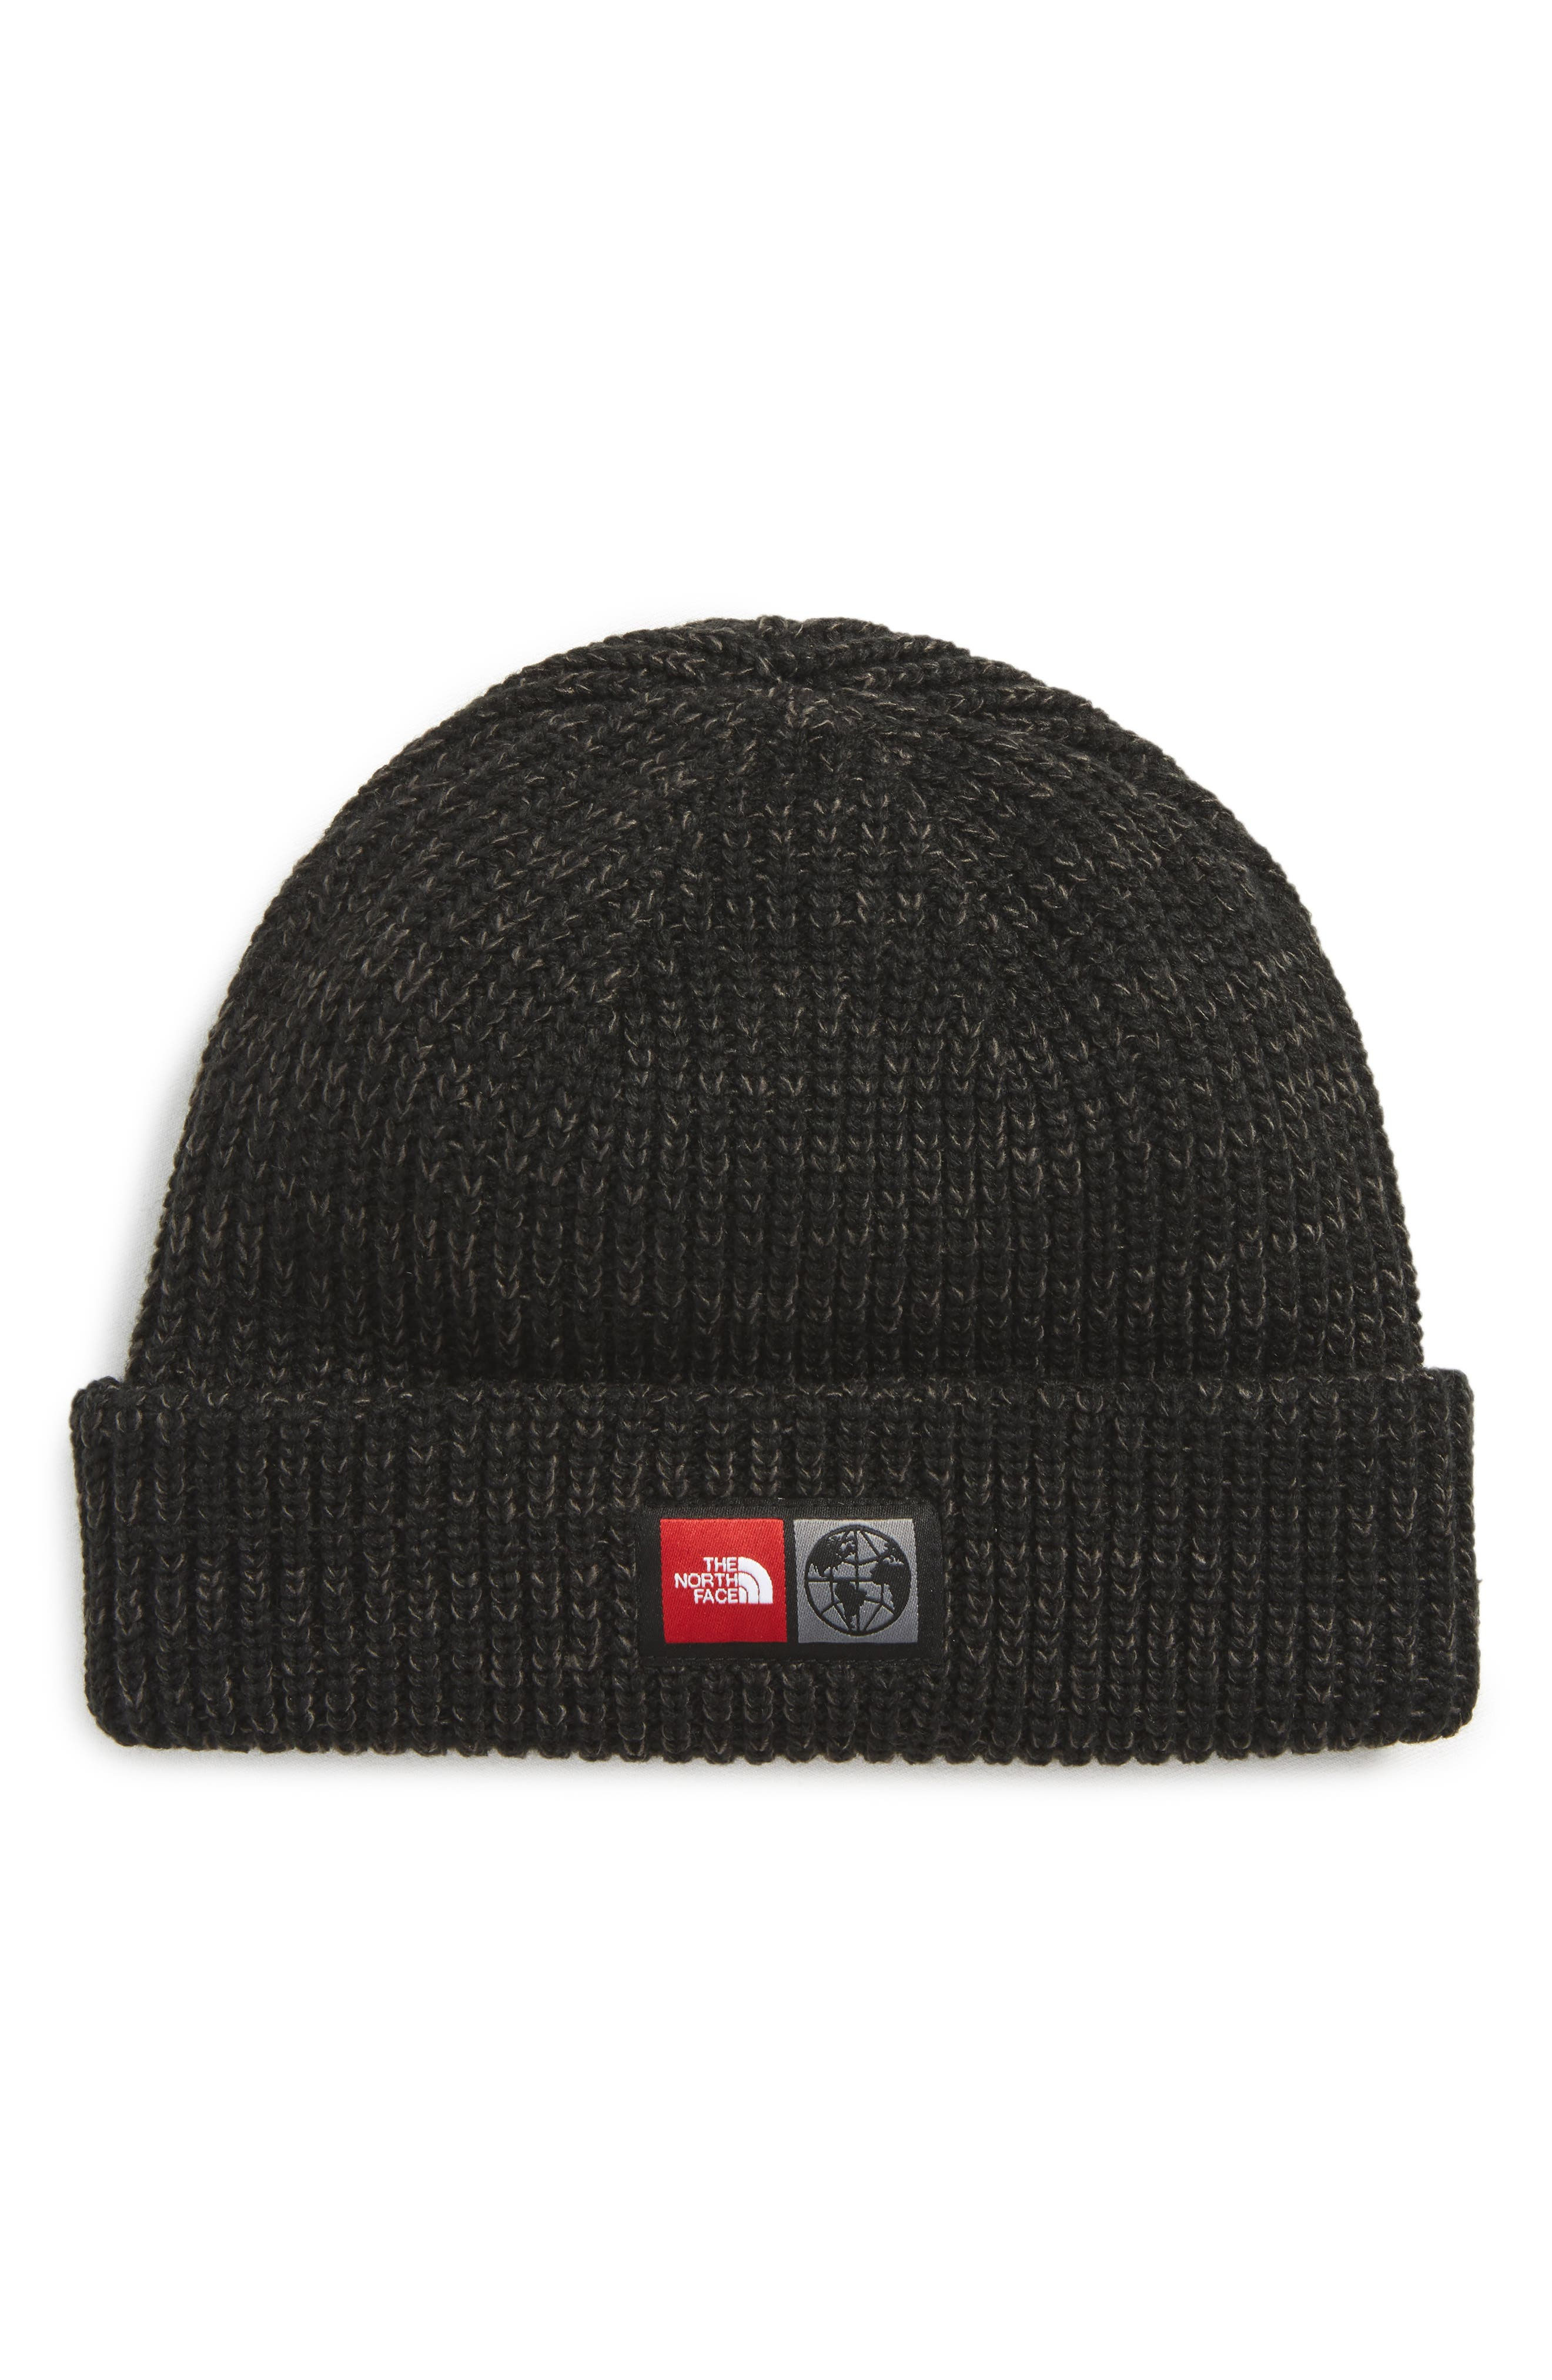 International Collection Acrylic Beanie,                             Main thumbnail 1, color,                             001